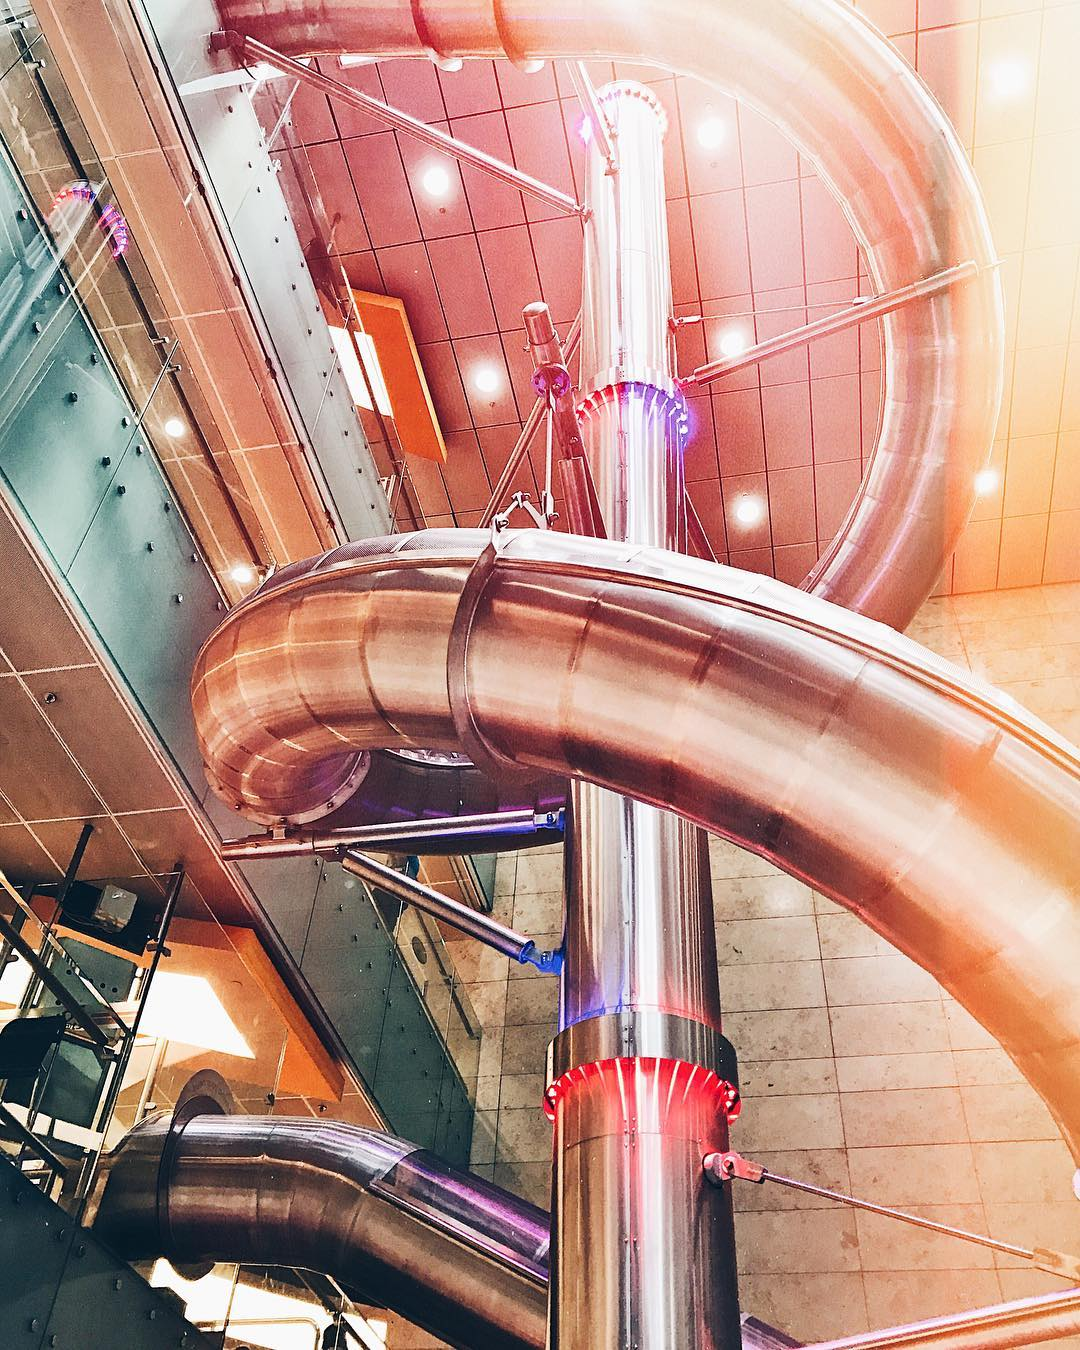 A view of the slide at Changi International Airport in Singapore. The slide is suspended from a high ceiling.